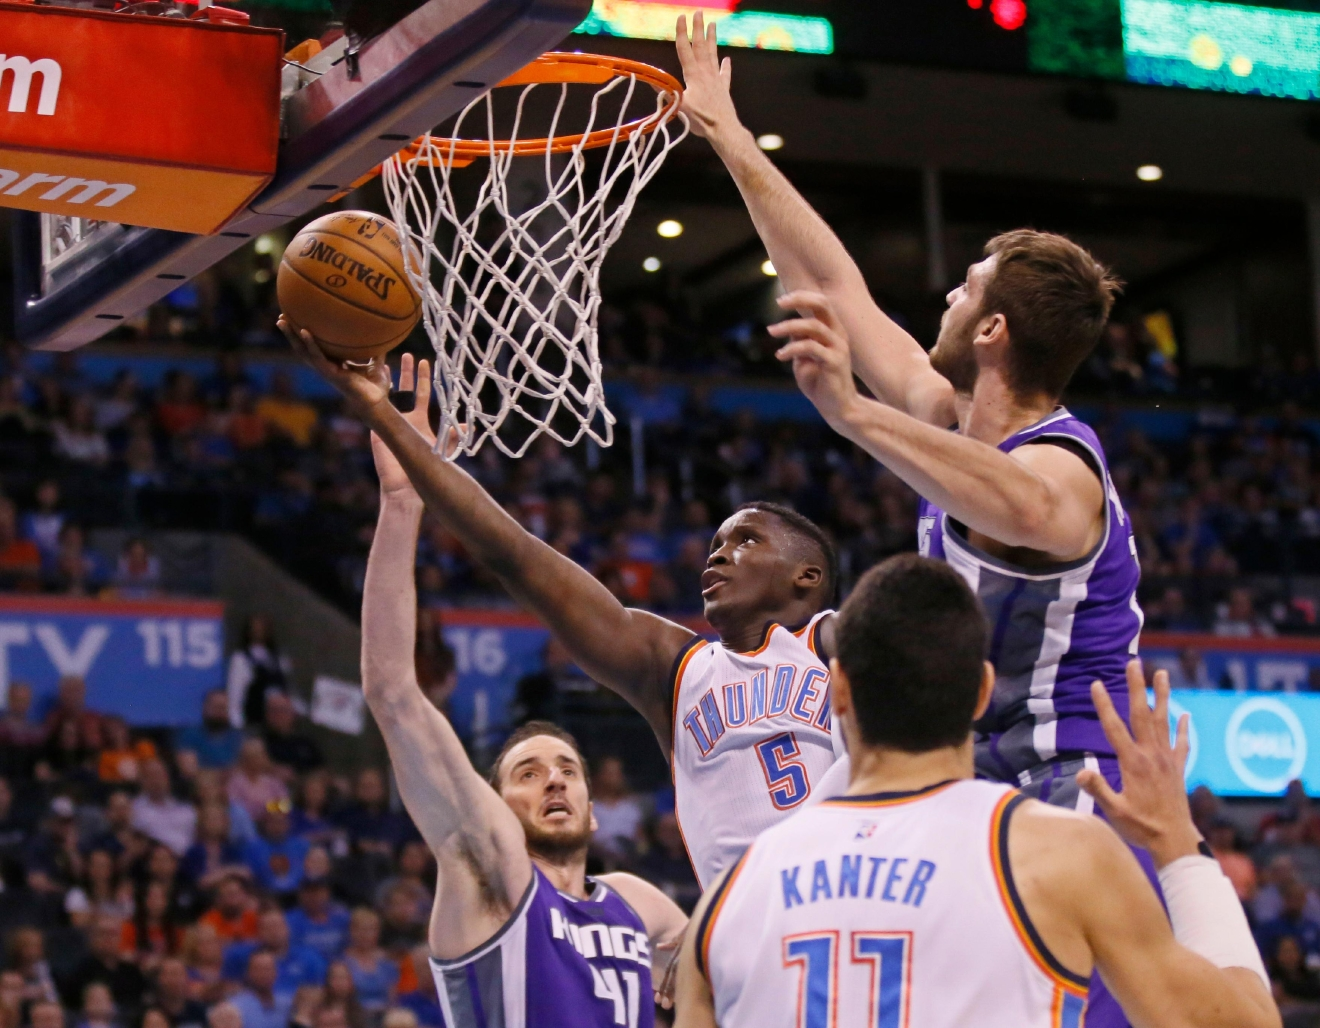 Oklahoma City Thunder guard Victor Oladipo (5) shoots between Sacramento Kings center Kosta Koufos (41) and center Georgios Papagiannis, right, in the second quarter of an NBA basketball game in Oklahoma City, Saturday, March 18, 2017. (AP Photo/Sue Ogrocki)